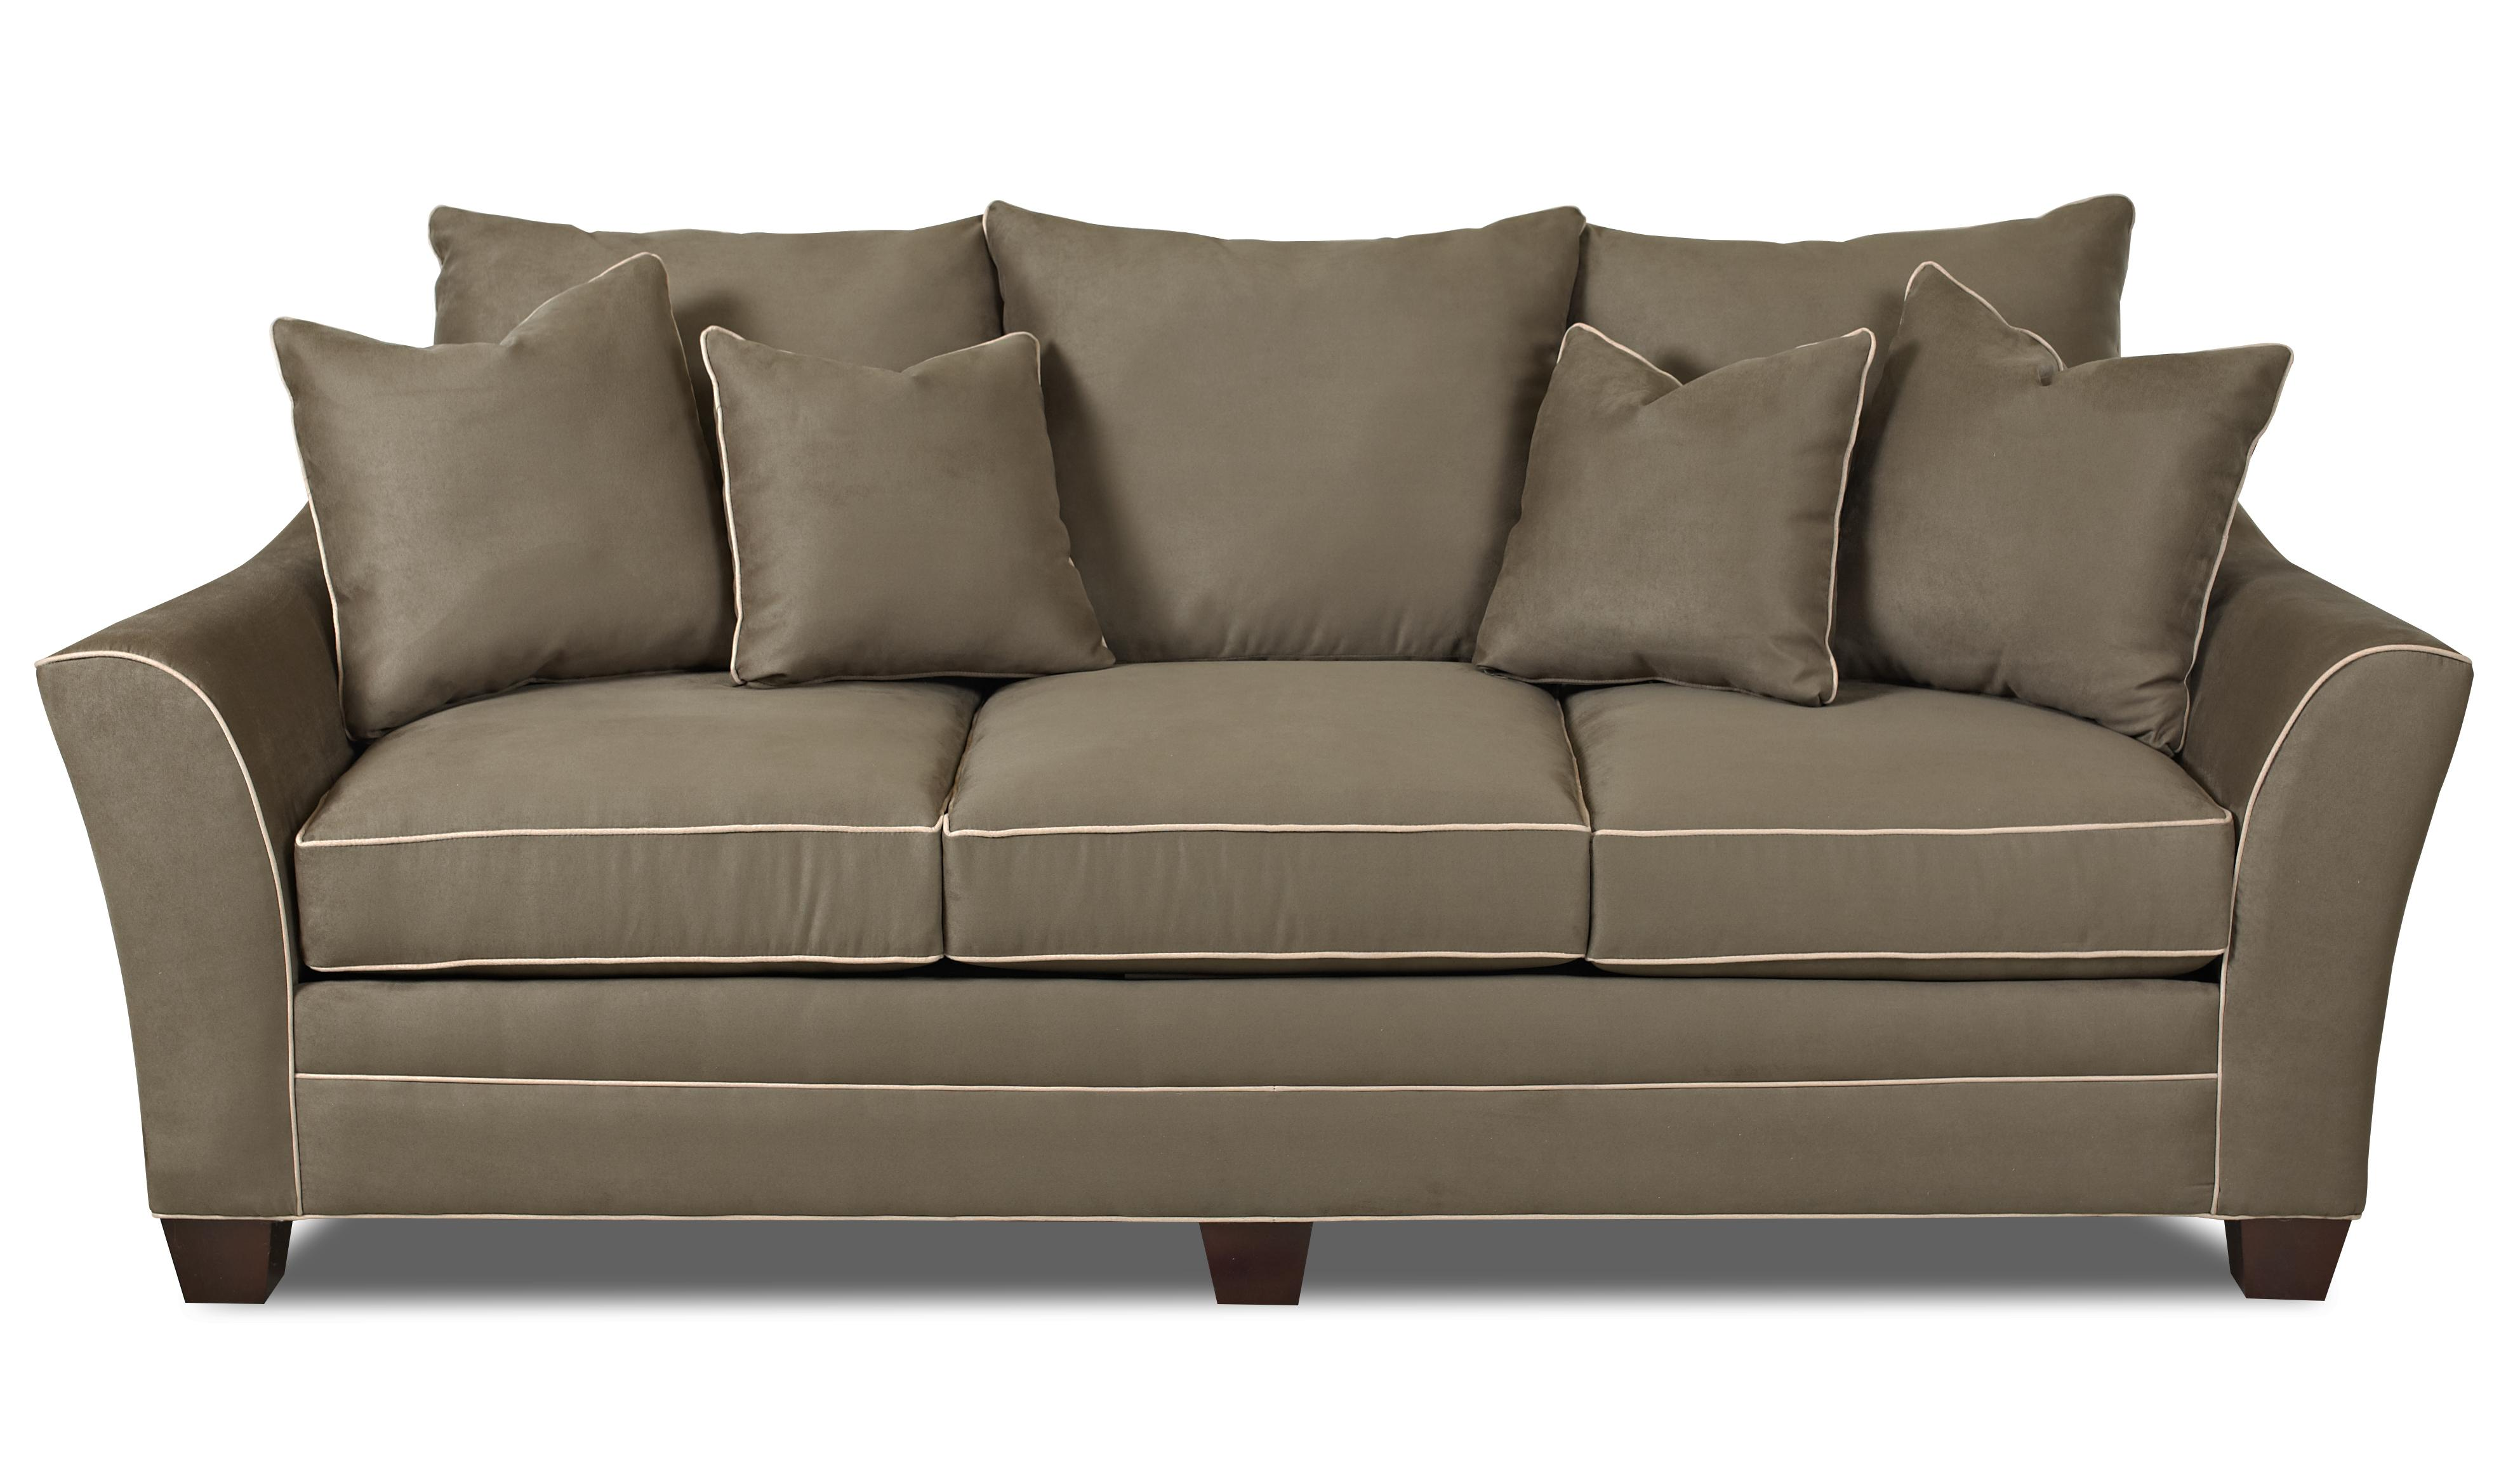 Beautiful Klaussner Posen Stationary Contemporary Sofa   Item Number: 83800 S